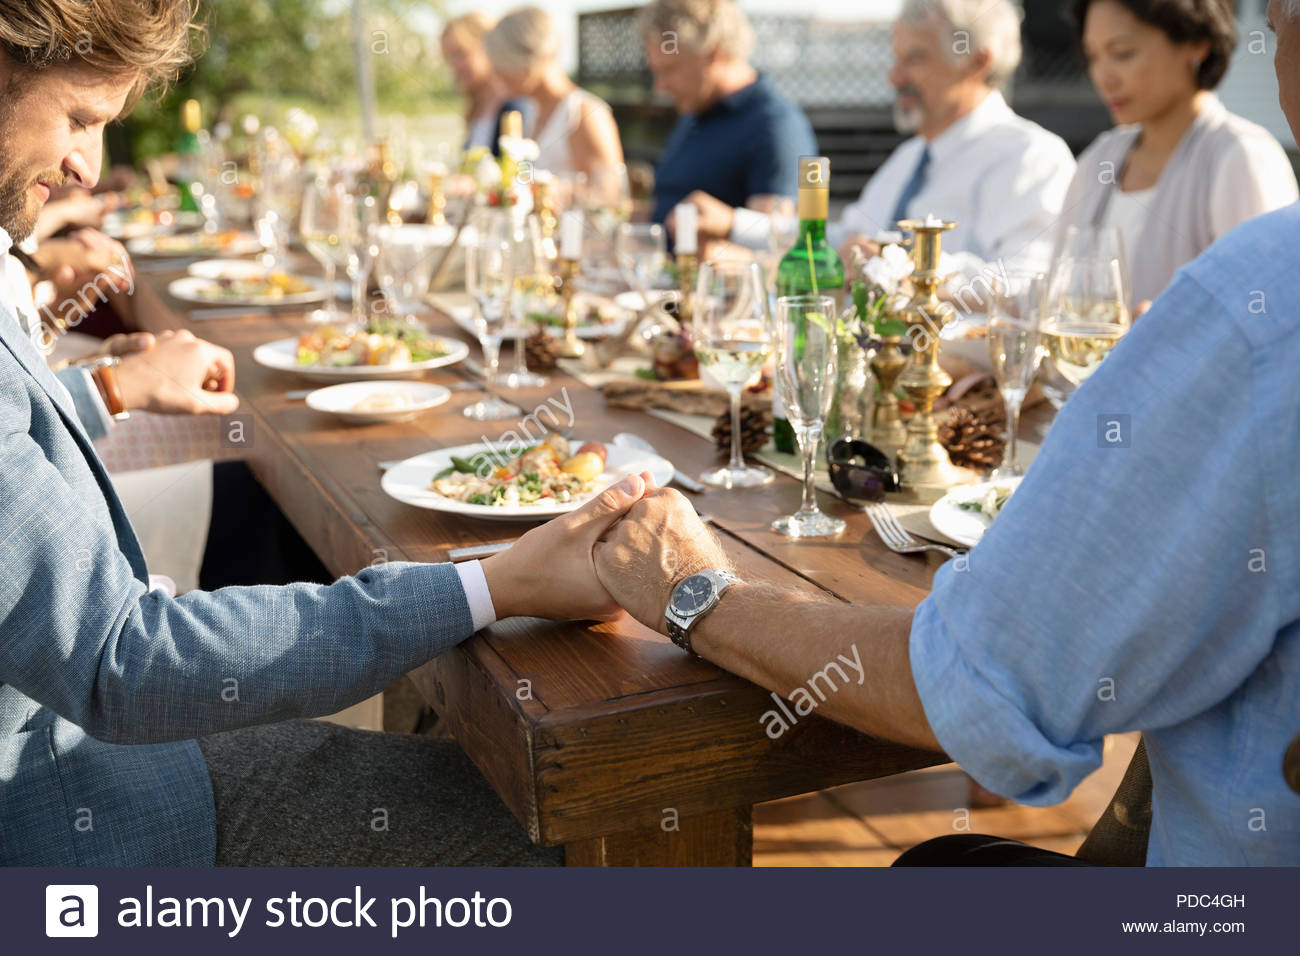 Father and son holding hands during prayer at garden party lunch - Stock Image